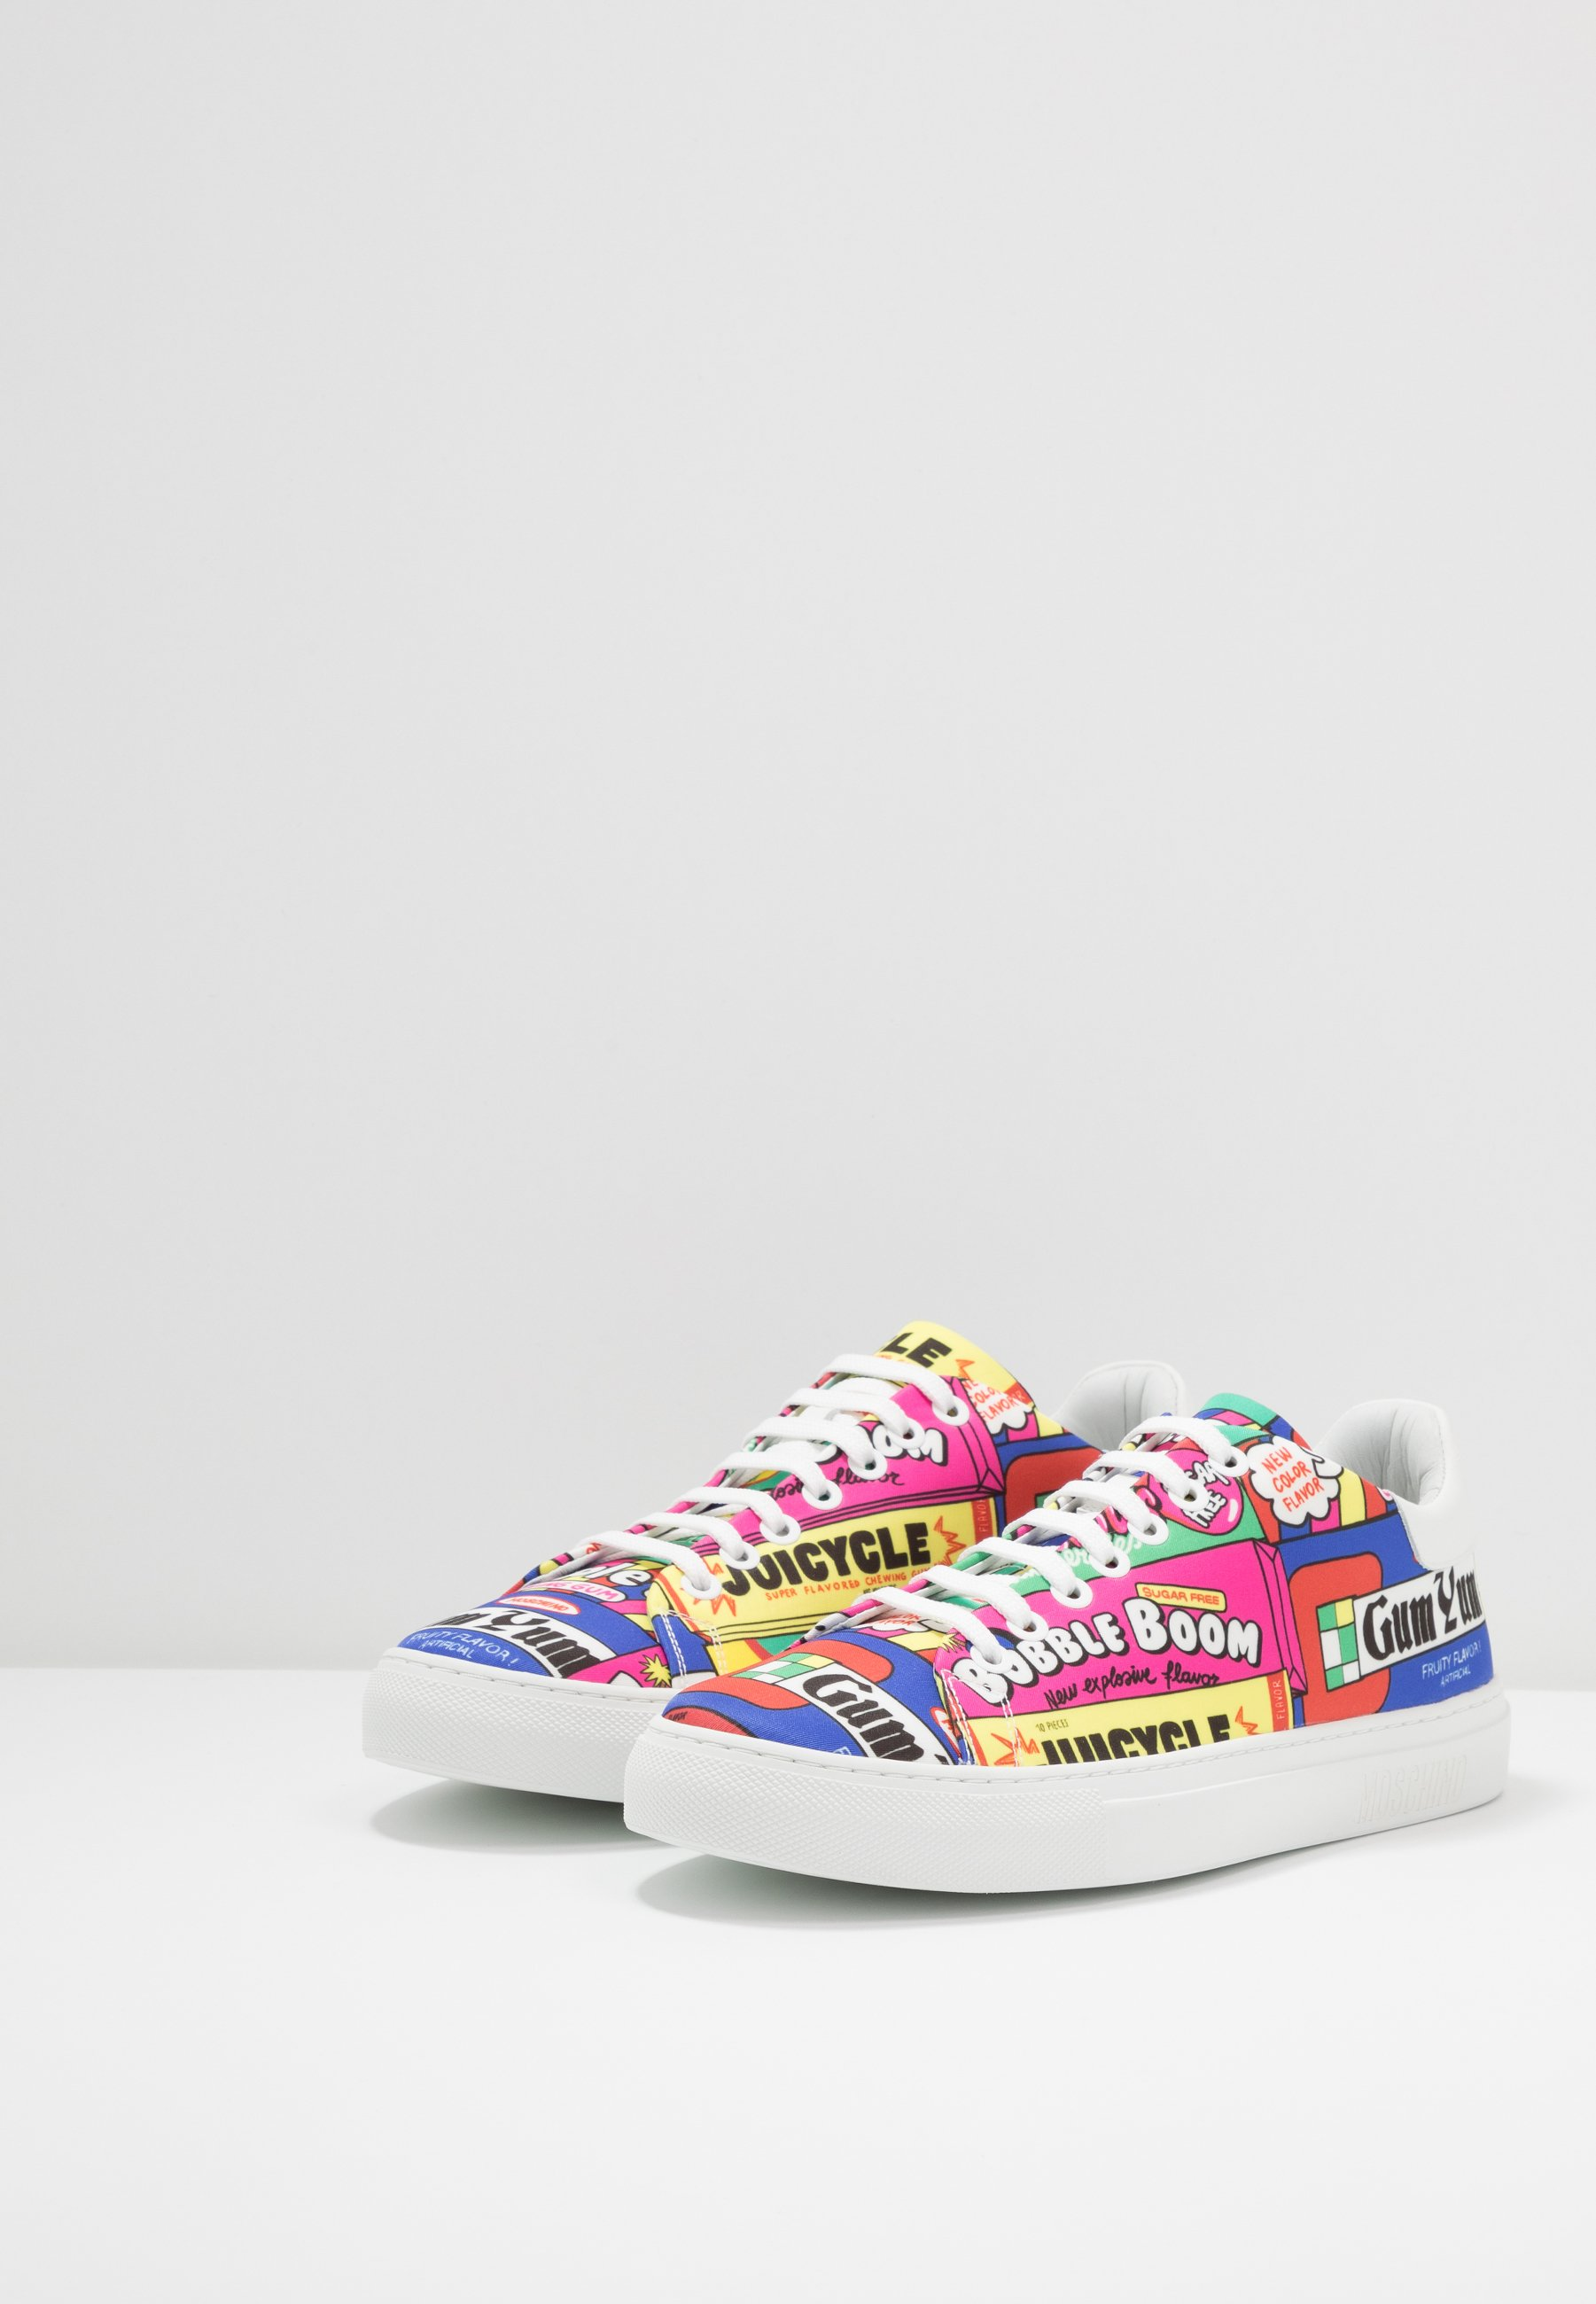 MOSCHINO Sneakers - multicolor